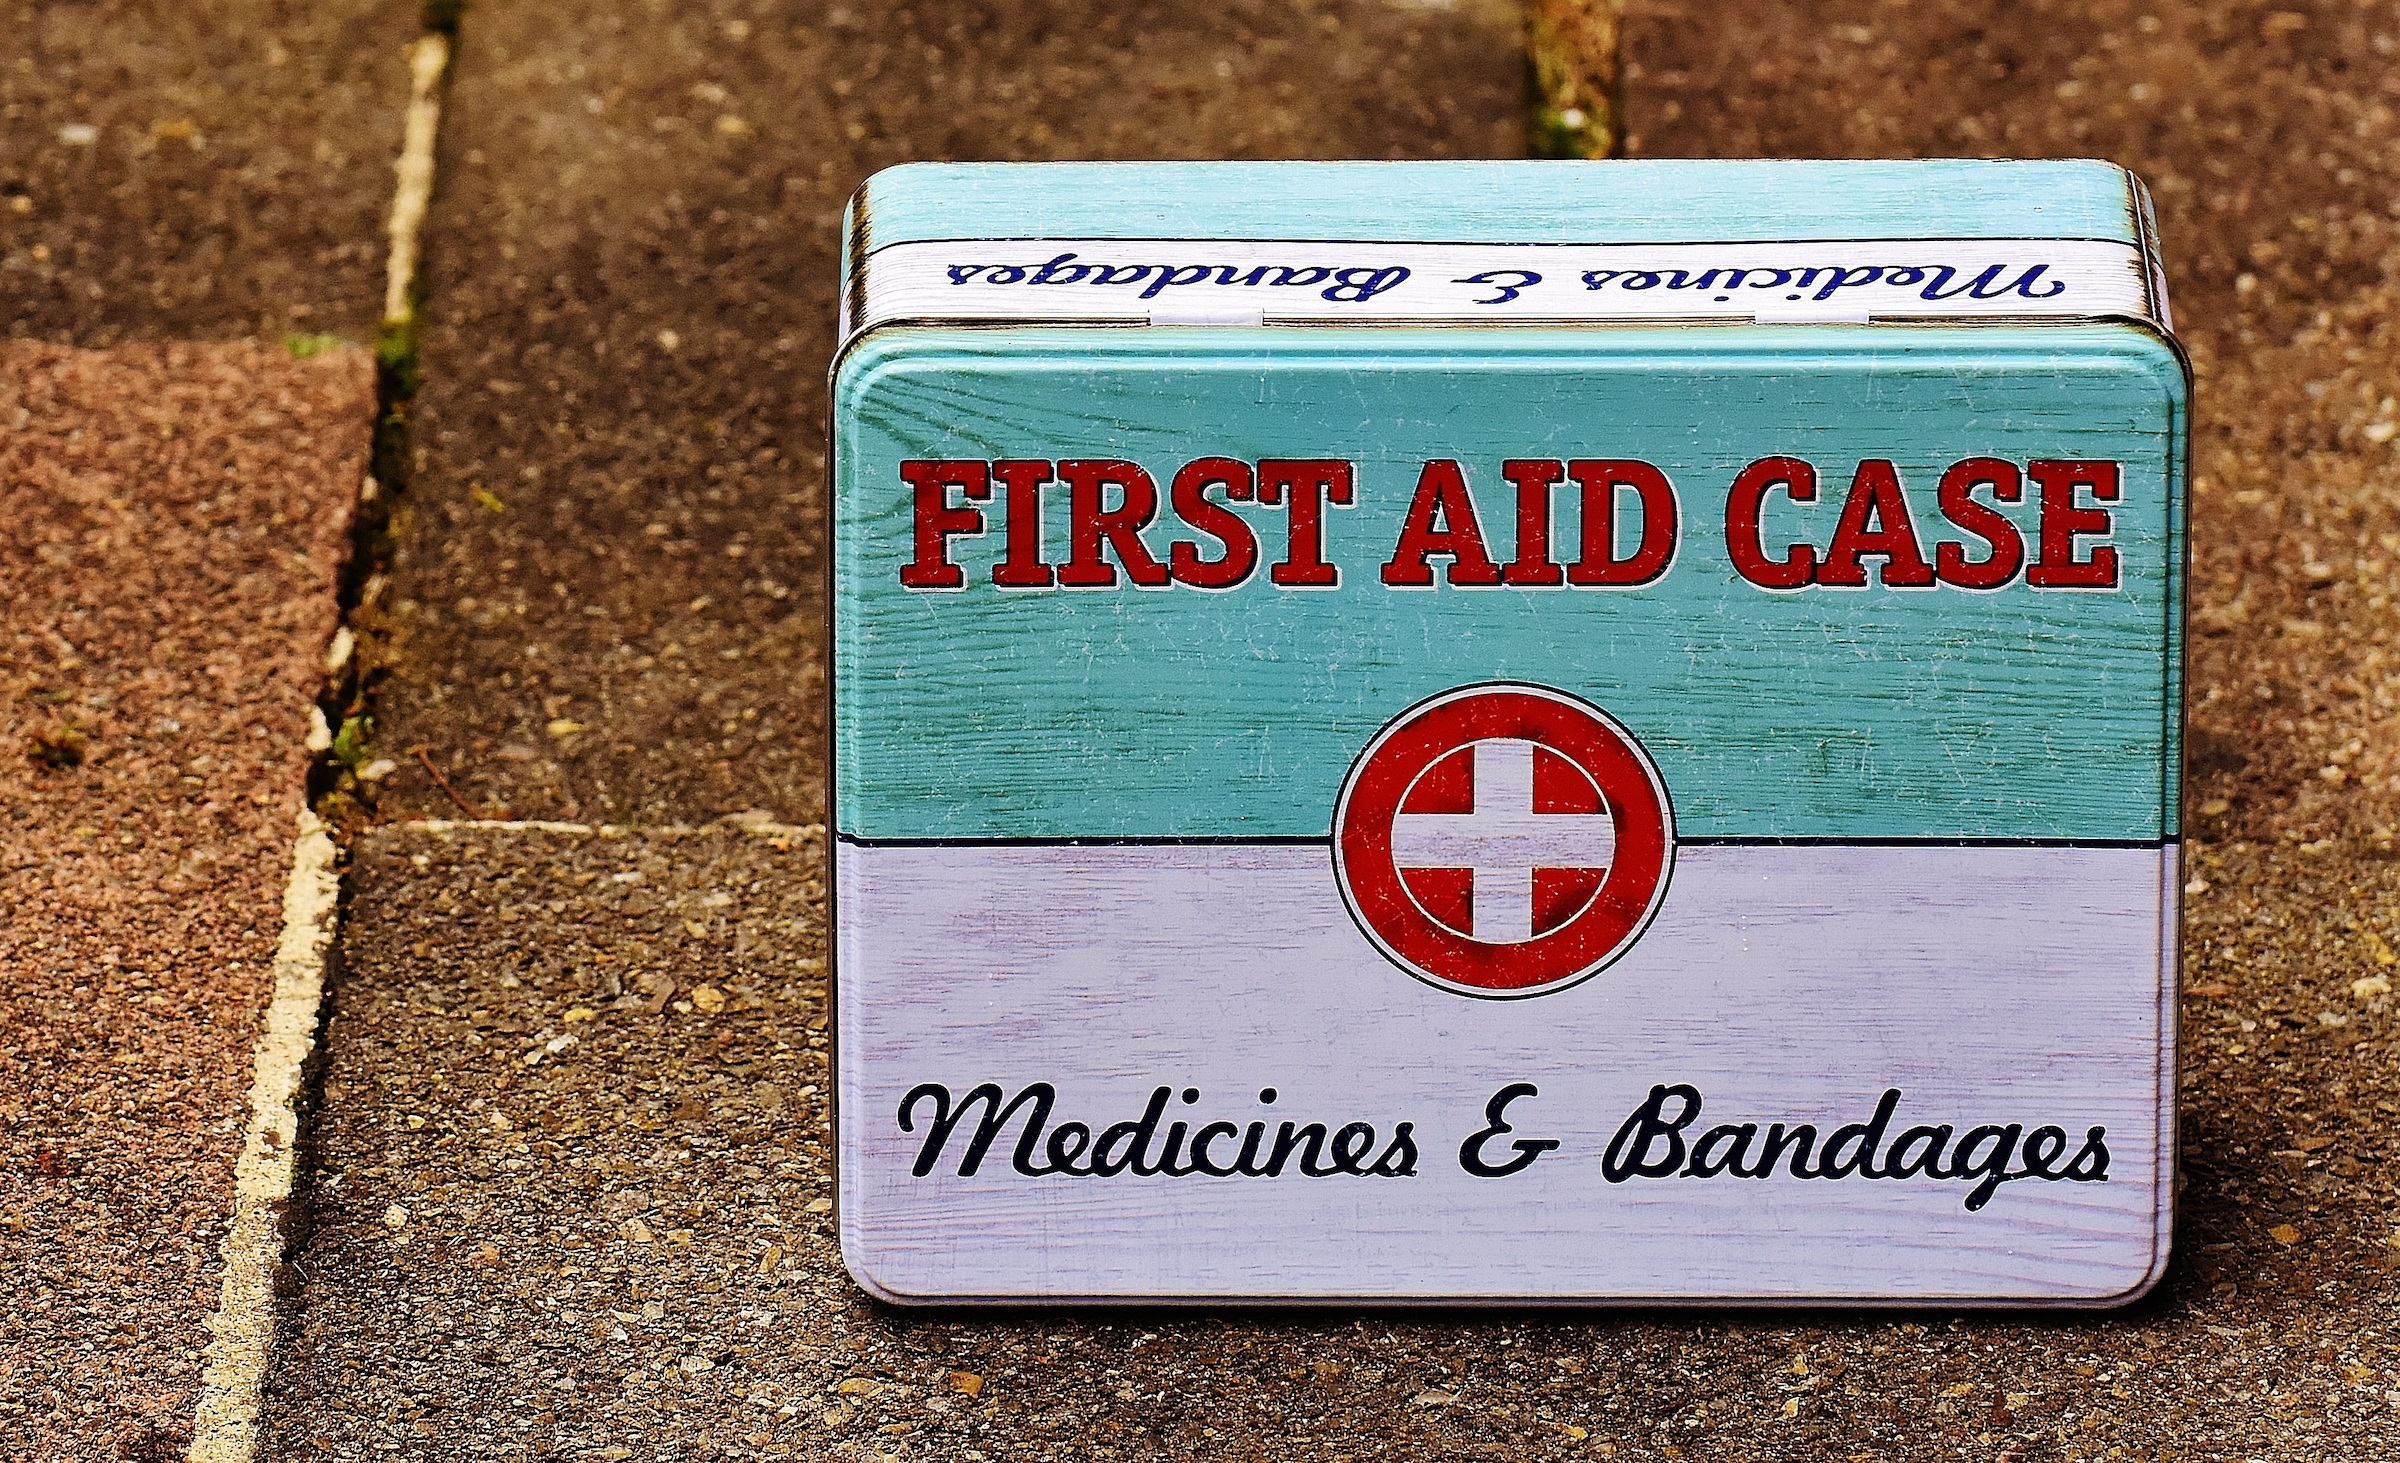 First aid case of medicine and bandages